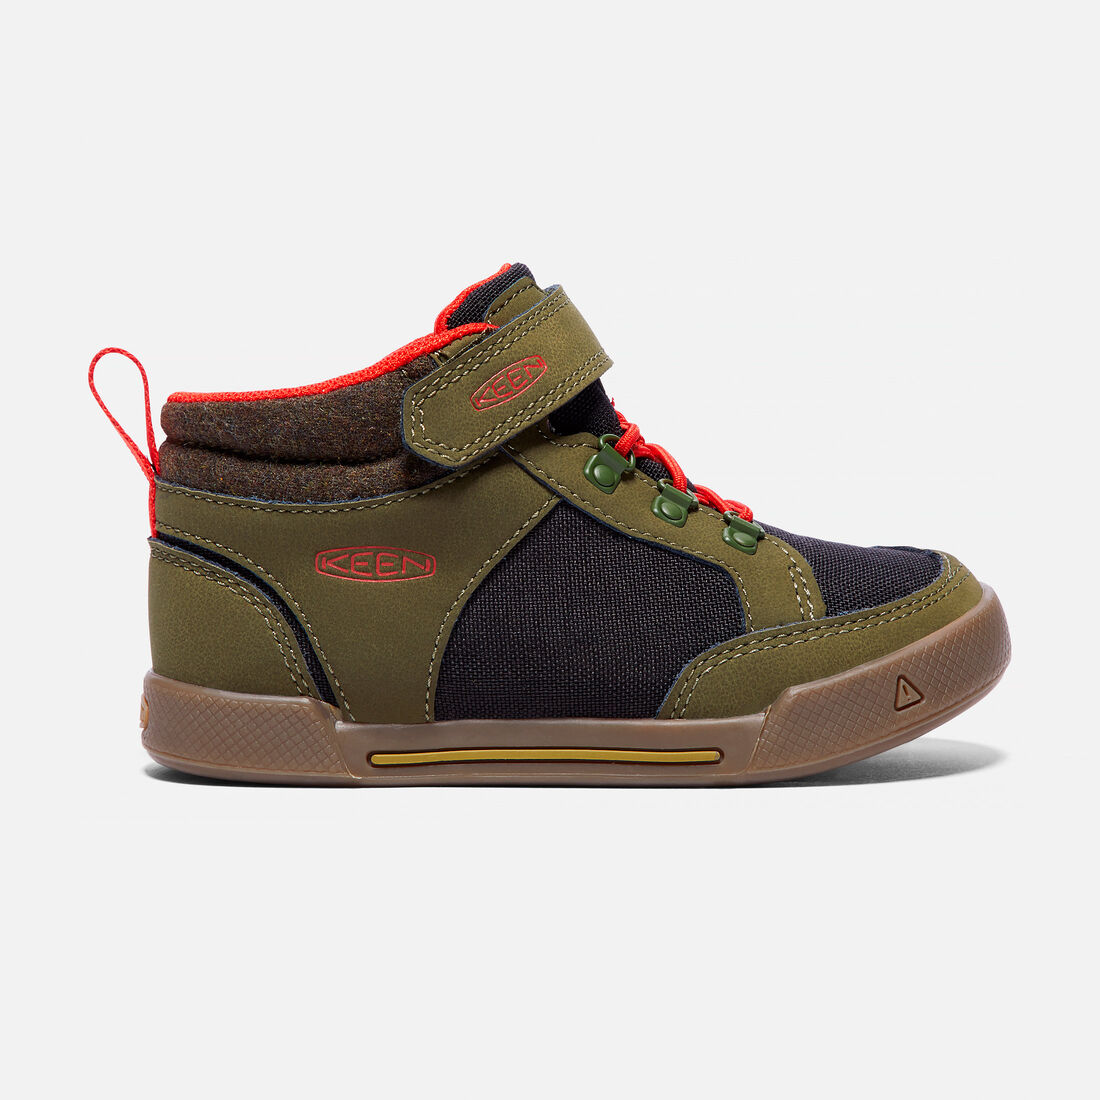 Little Kids' ENCANTO WESLEY II HIGH TOP in Dark Olive/Black - large view.